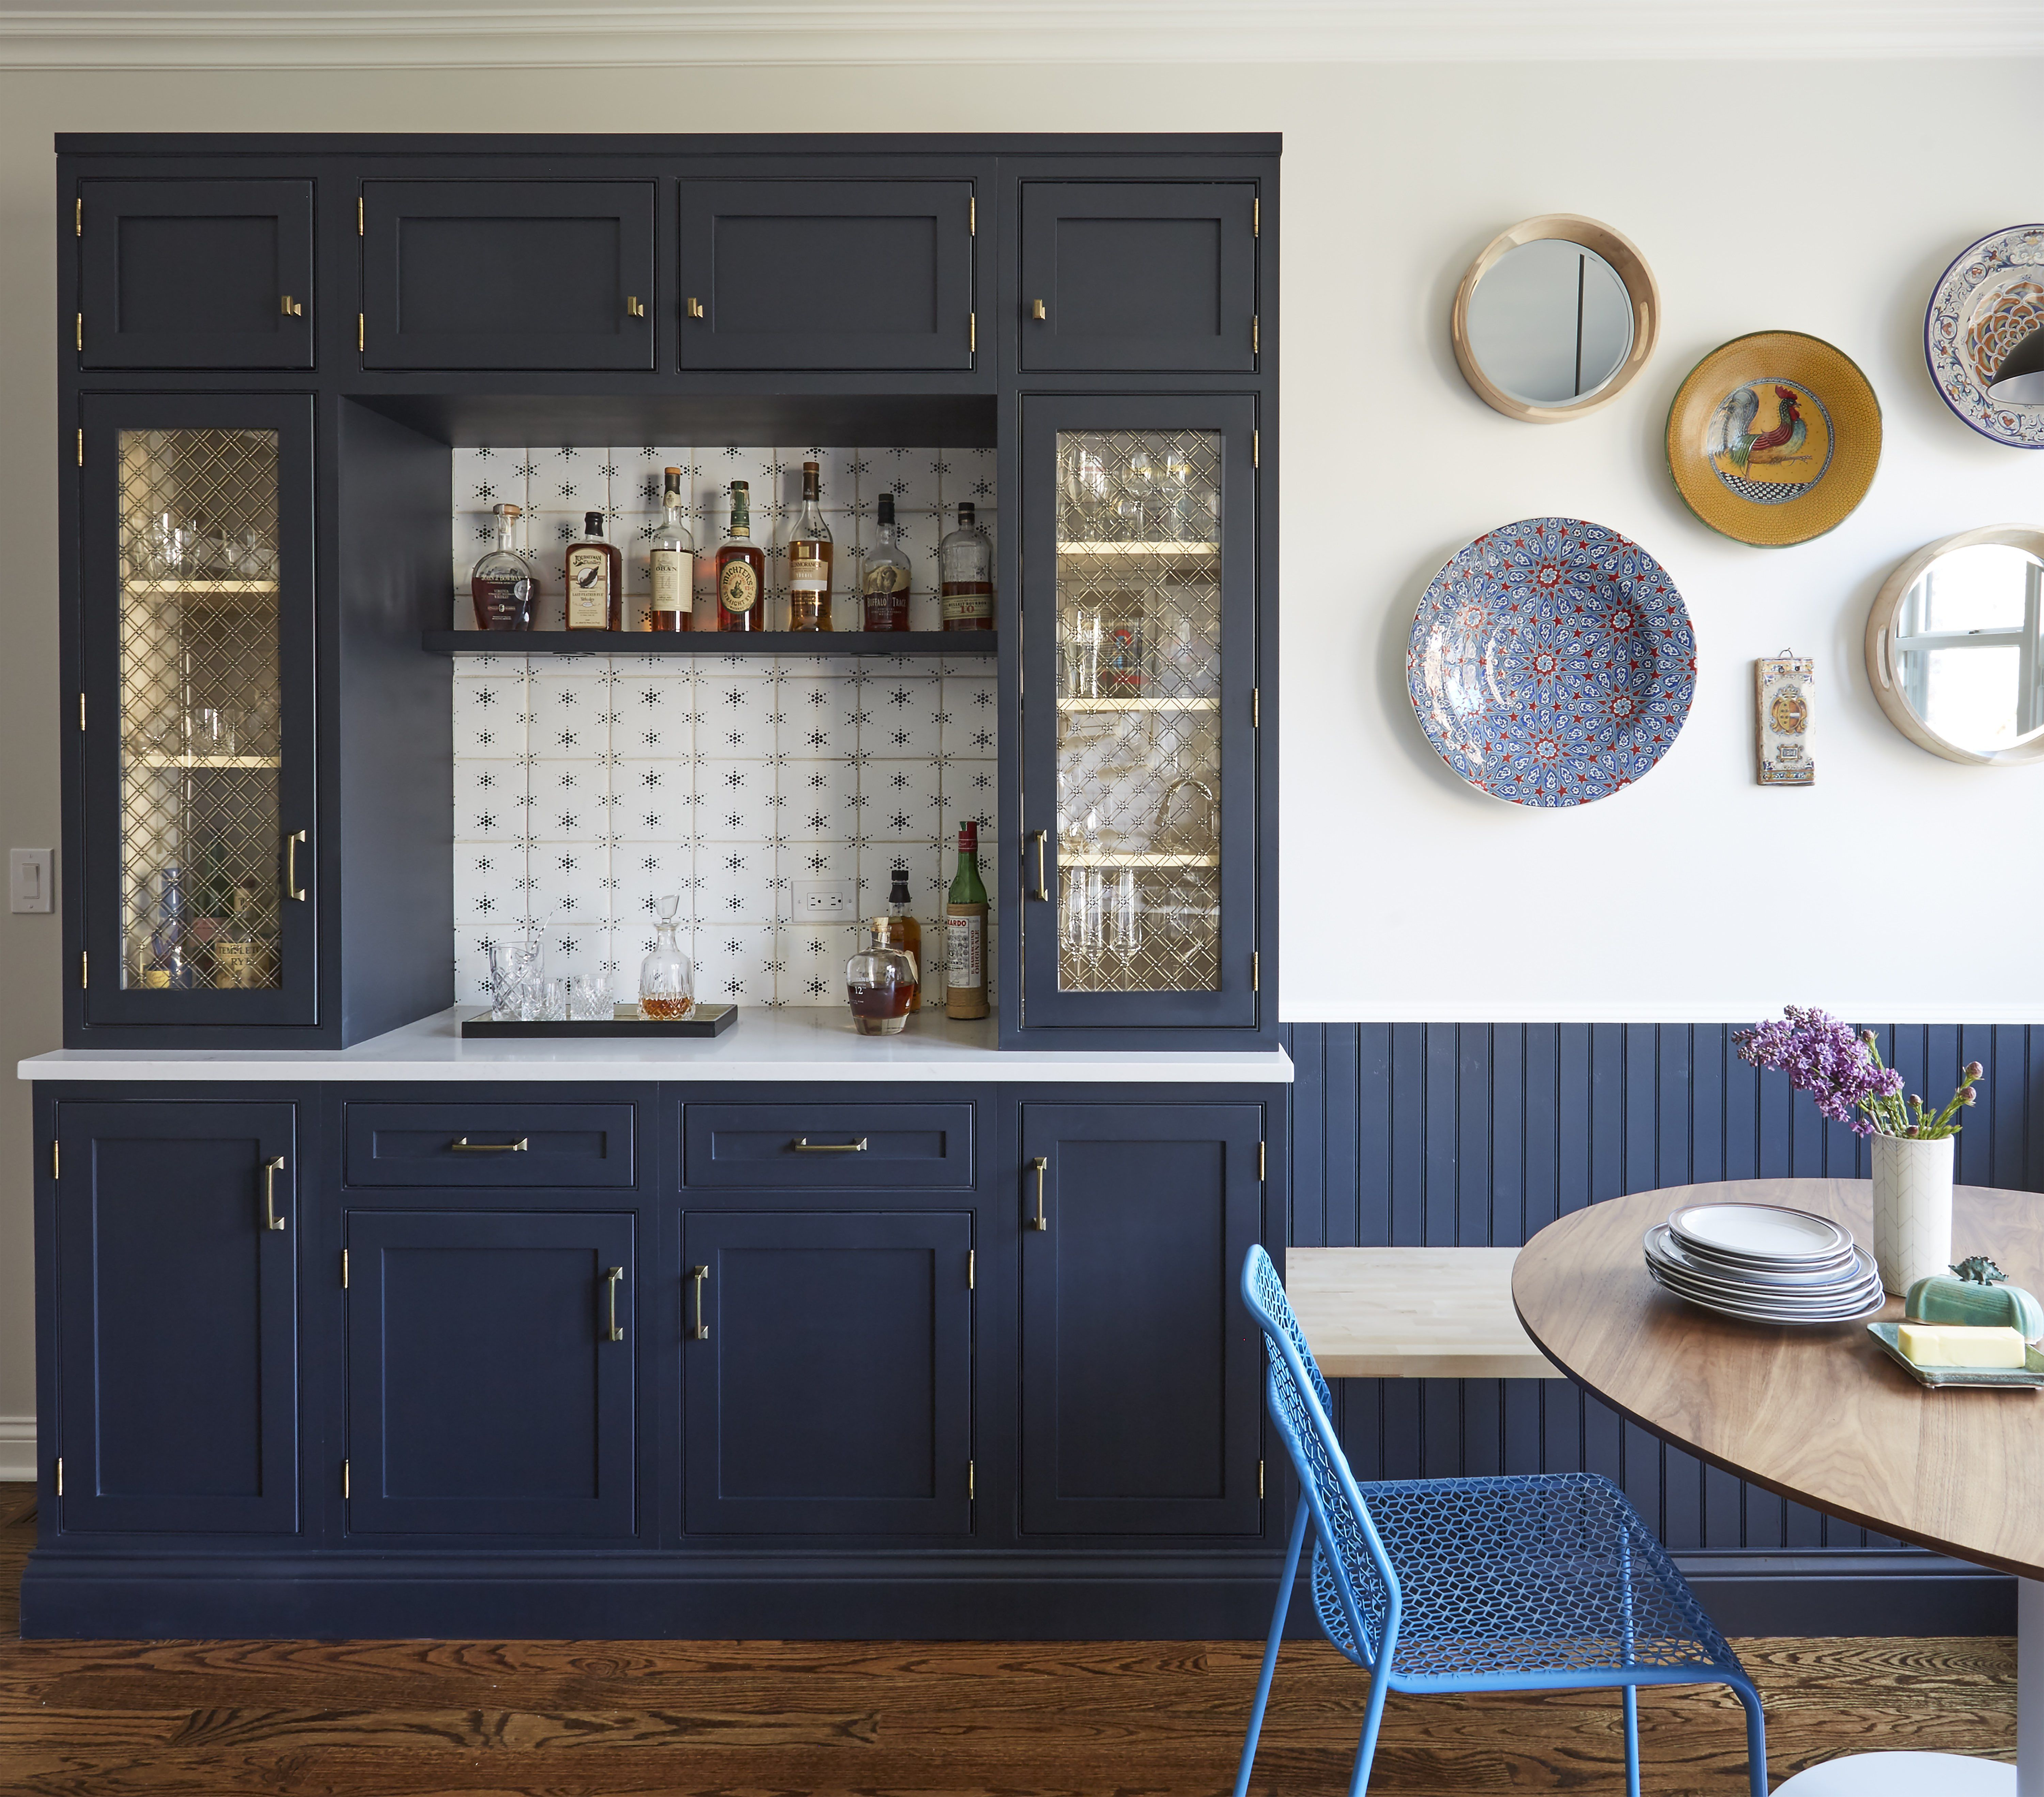 Elle Decor & 40 Blue Kitchen Ideas - Lovely Ways to Use Blue Cabinets and ...